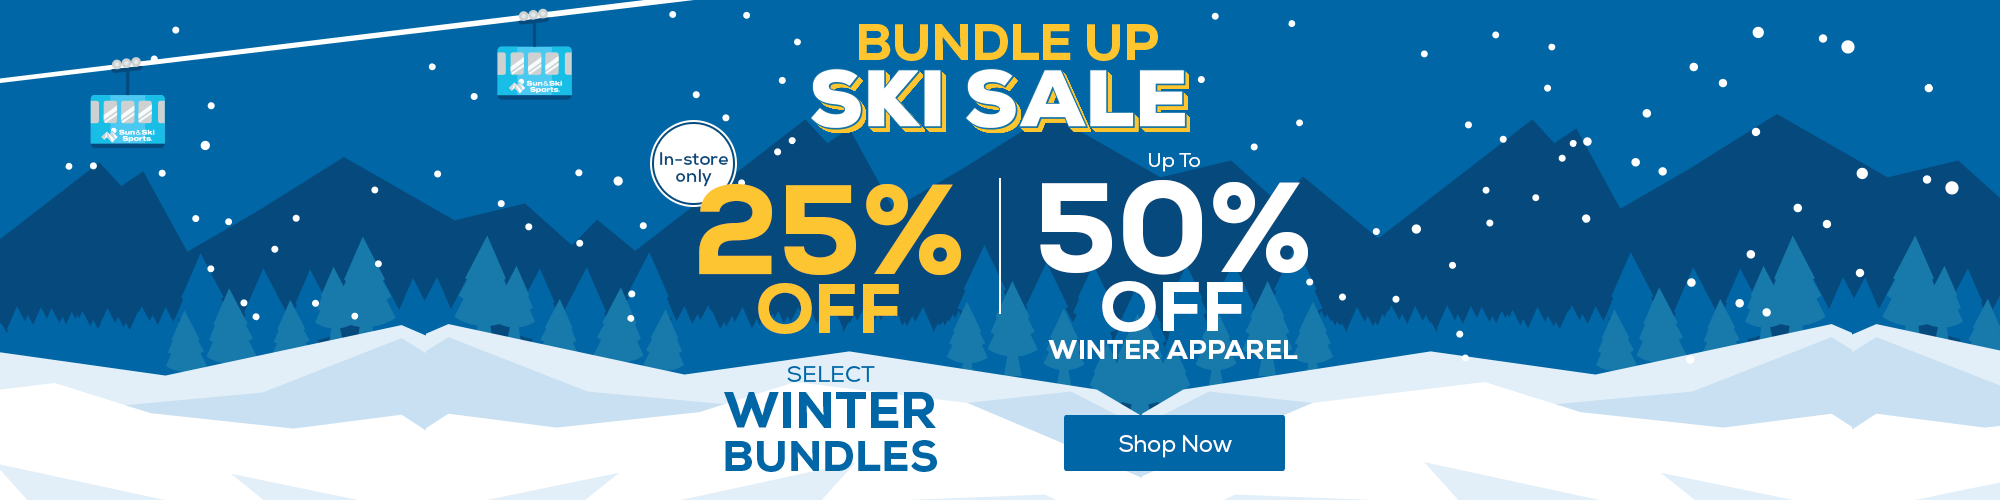 Bundle Up Ski Sale. Up to 50% off winter apparel plus 25% off select winter bundles in store. Find a local store.